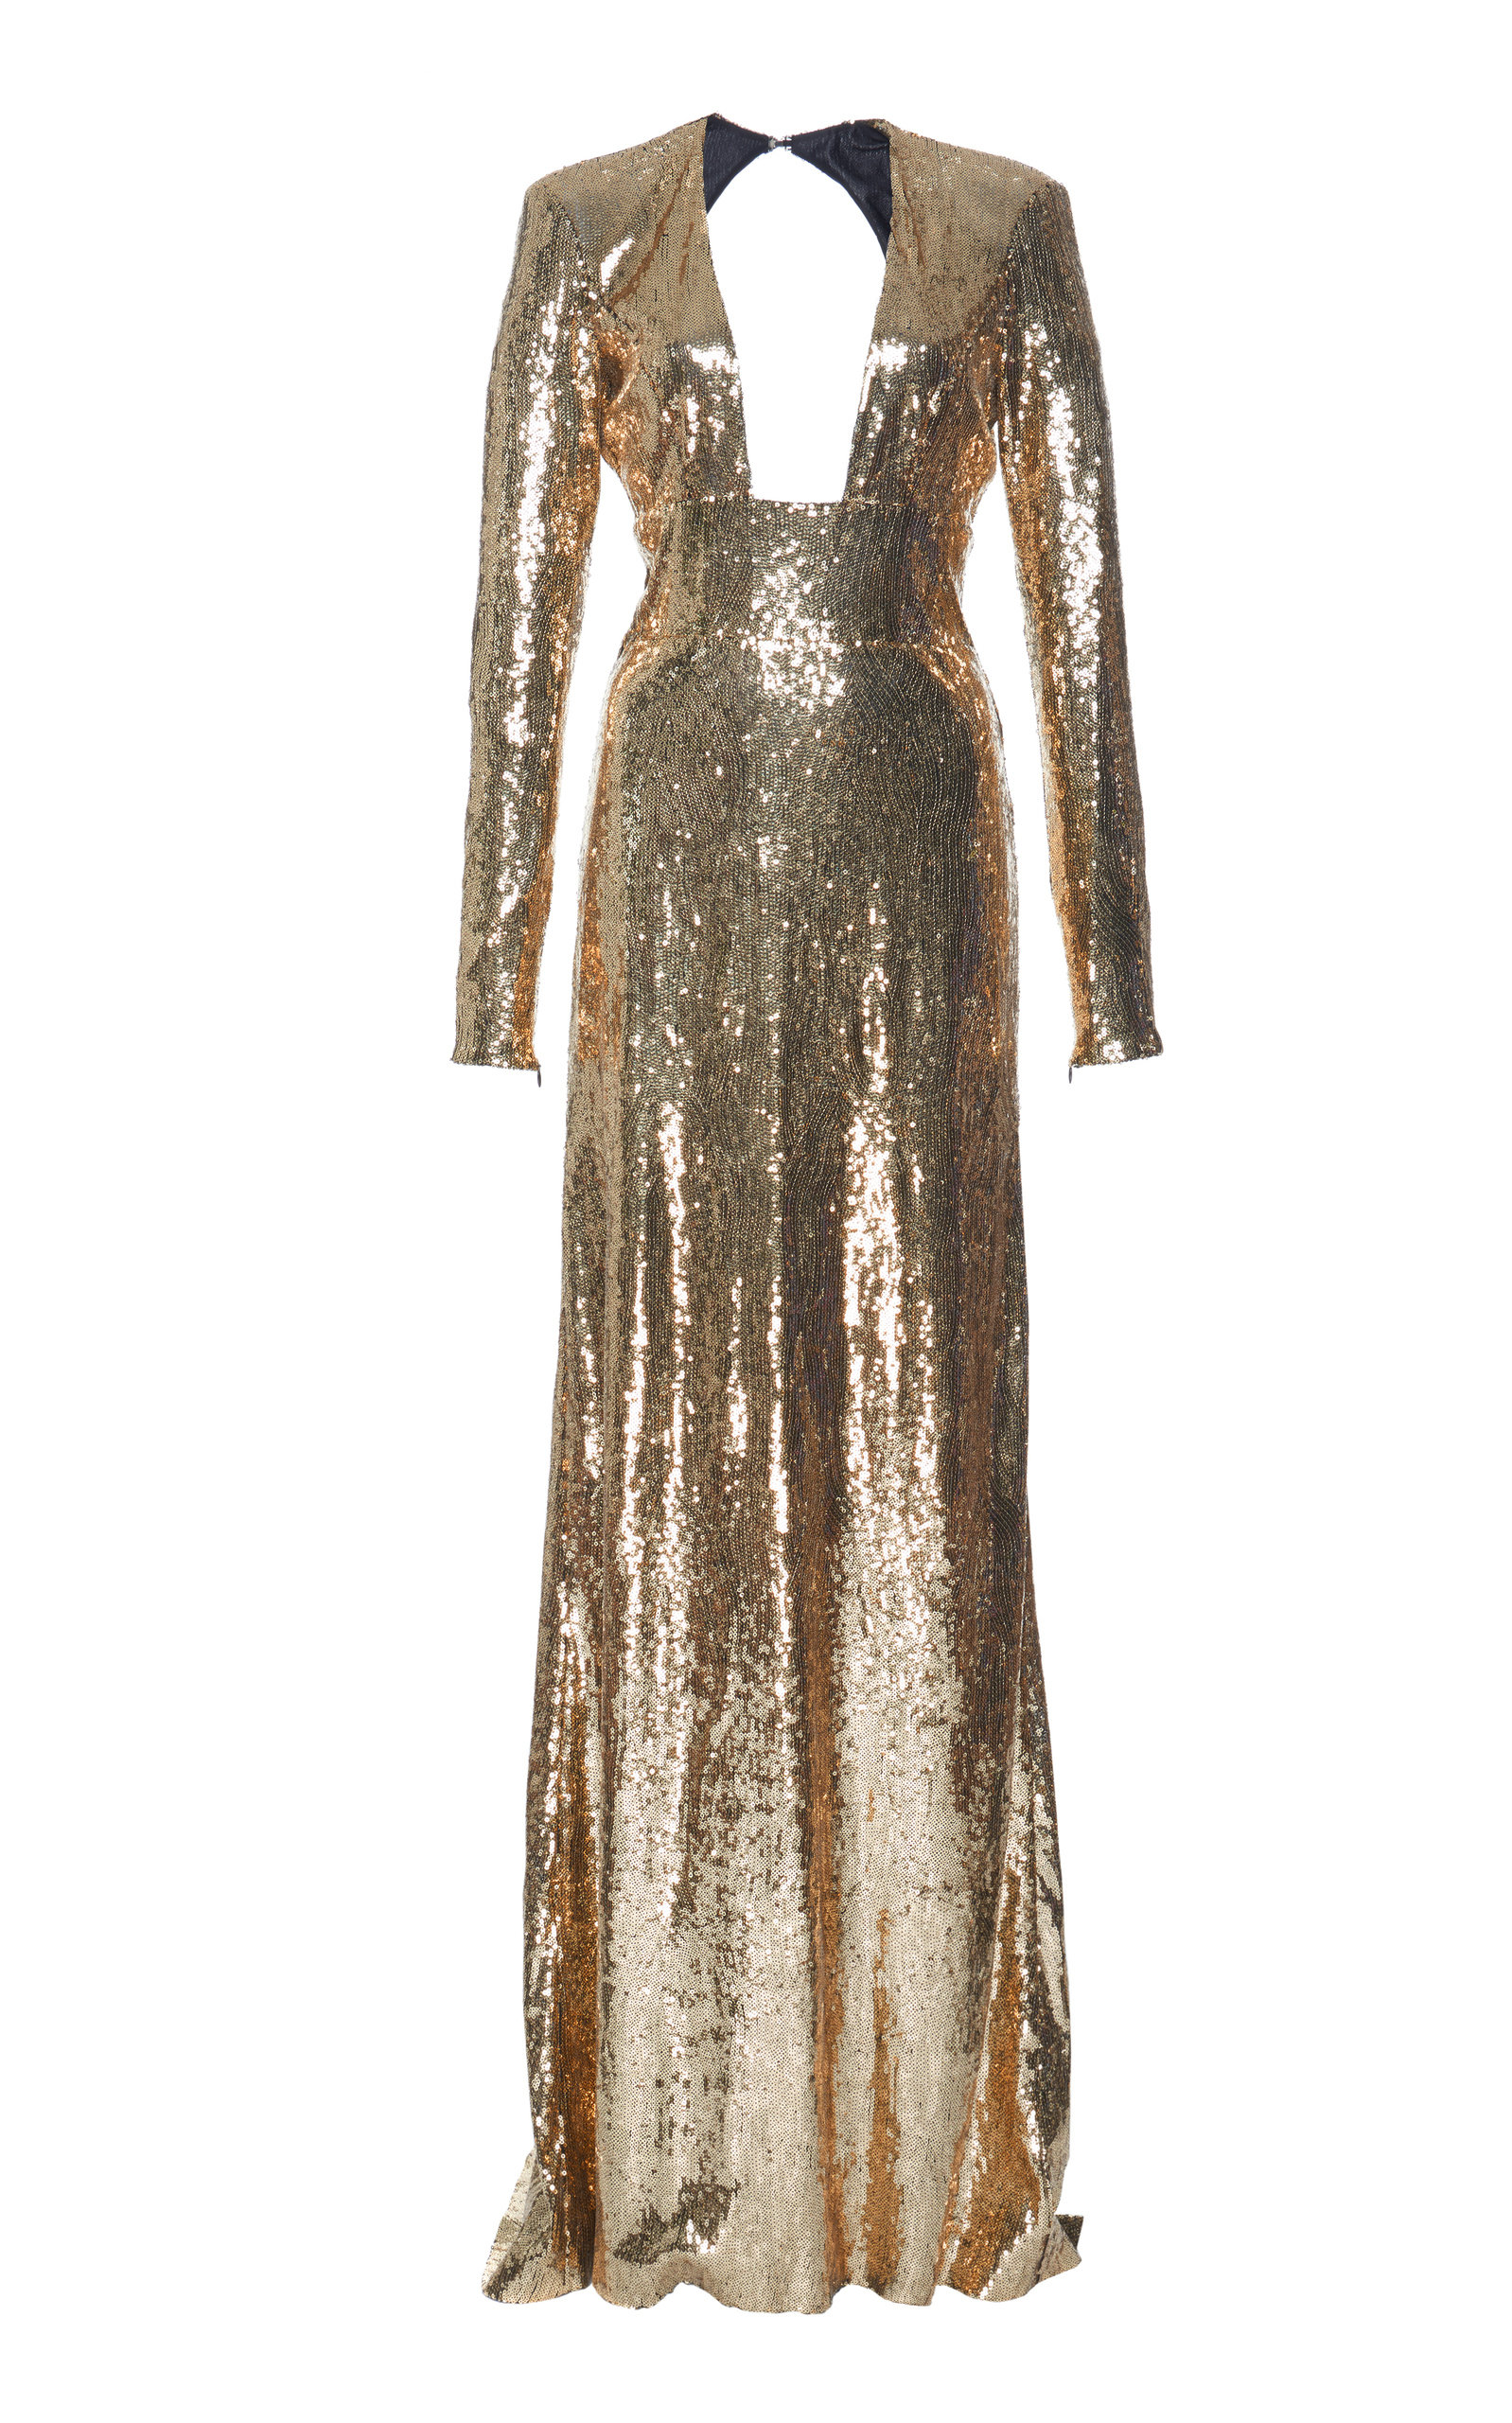 Sequin and crystal-embellished gown Dundas For Nice Cheap Price Discount Official Site Big Discount Cheap Price ZP0Y8Jyp6F